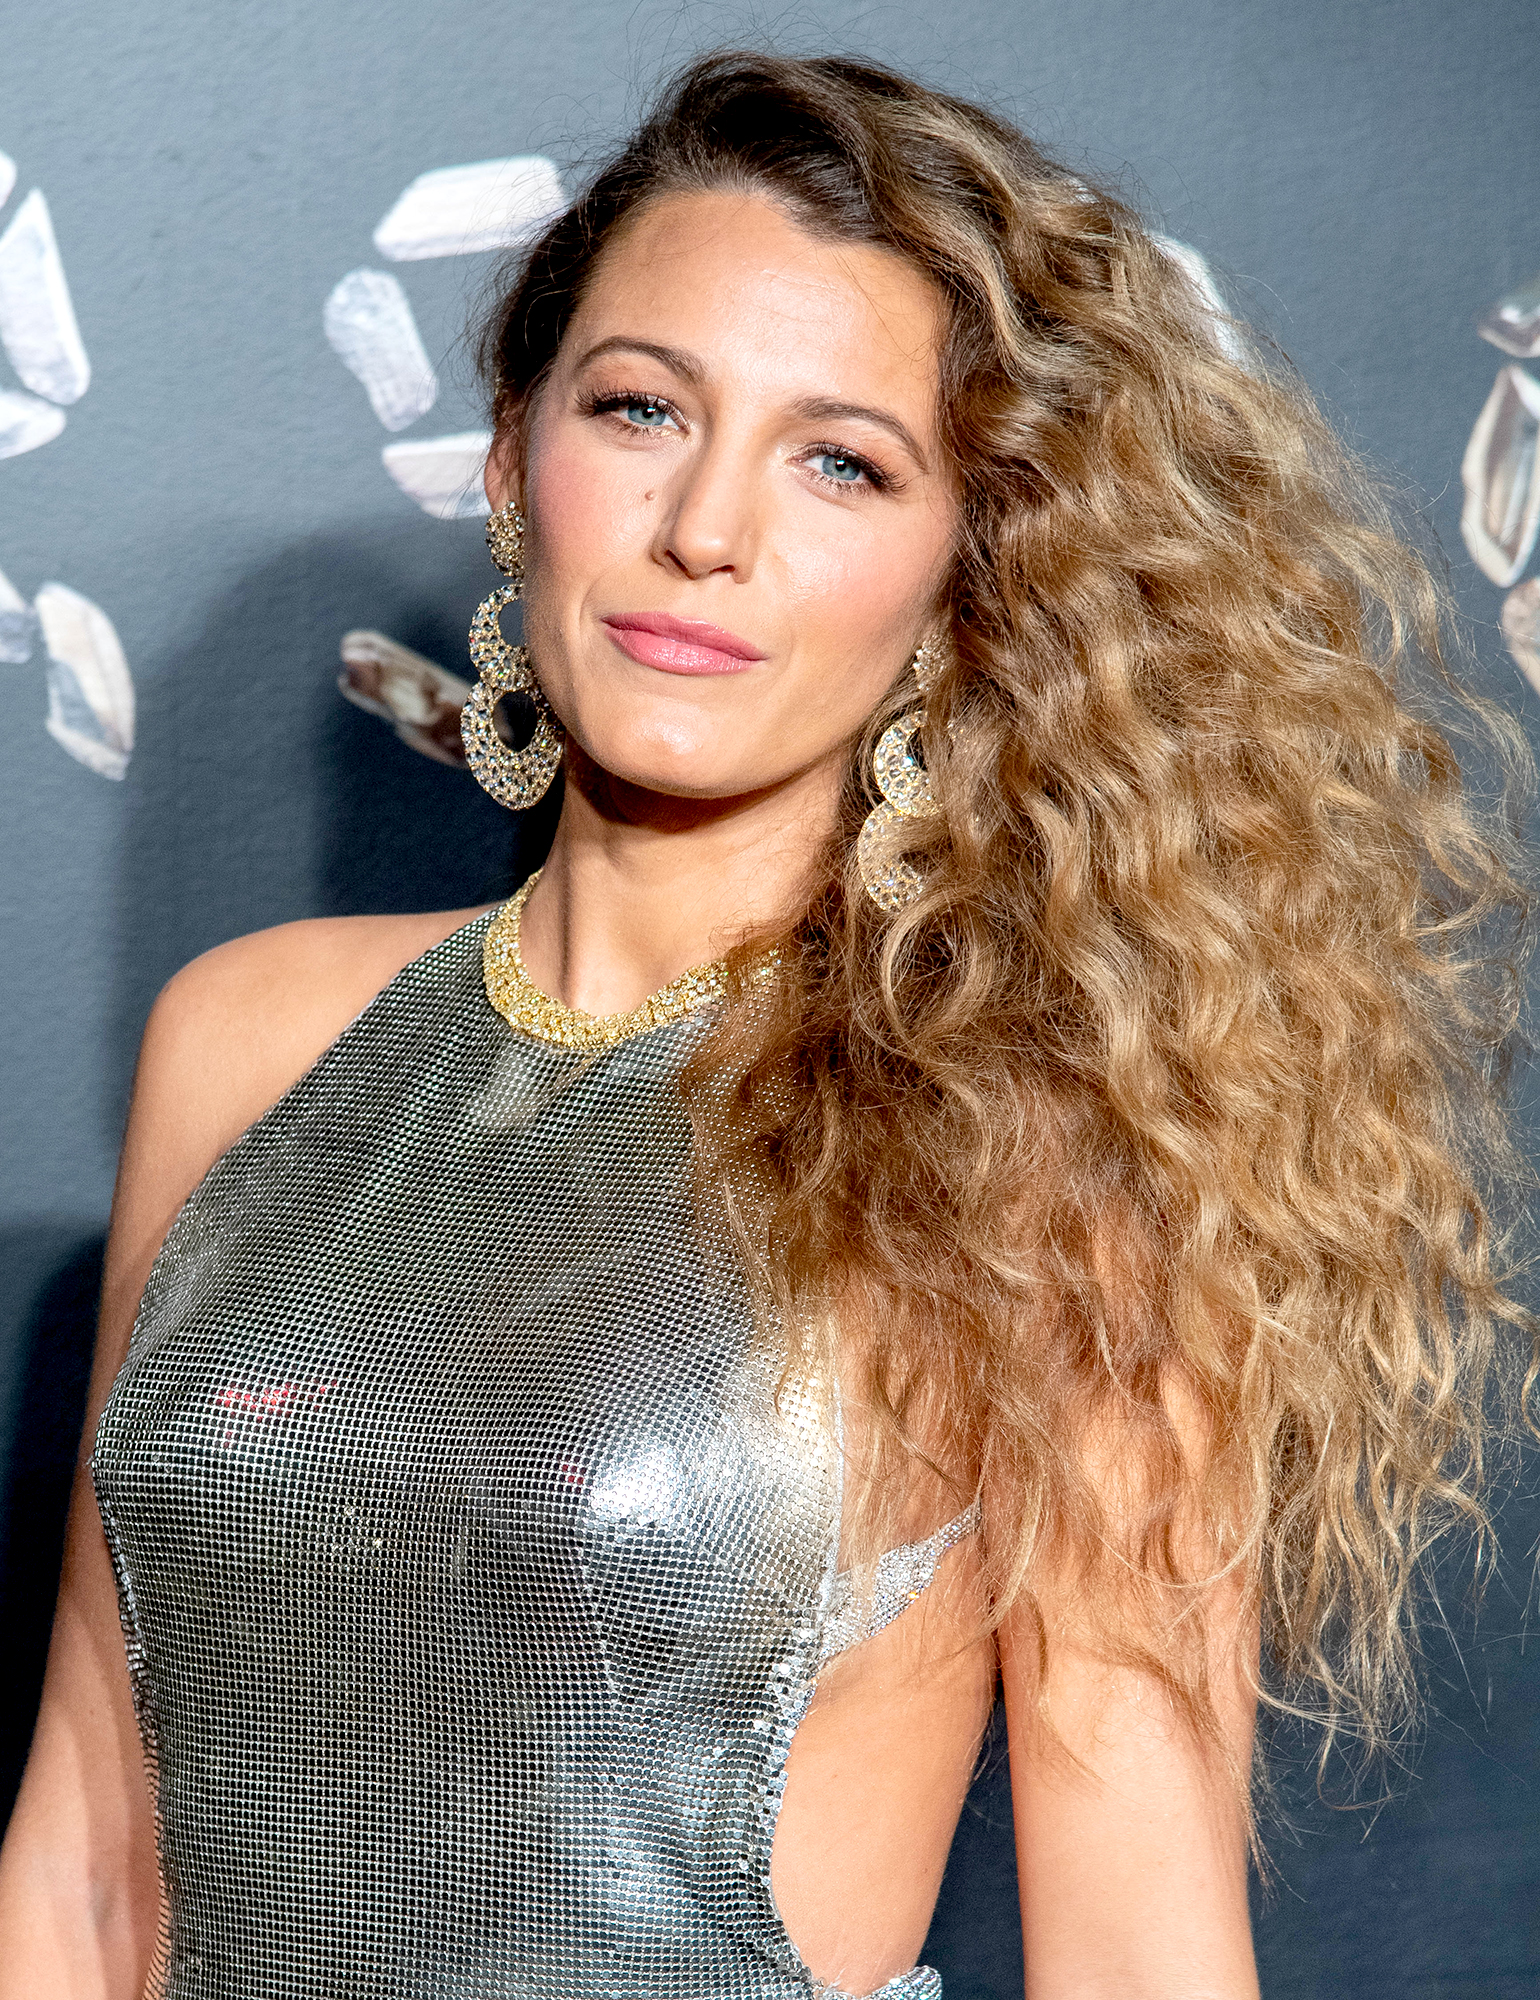 Blake-Lively-Devoted - NEW YORK, NEW YORK – DECEMBER 02: Blake Lively attends the the Versace fall 2019 fashion show at the American Stock Exchange Building in lower Manhattan on December 02, 2018 in New York City. (Photo by Roy Rochlin/Getty Images)